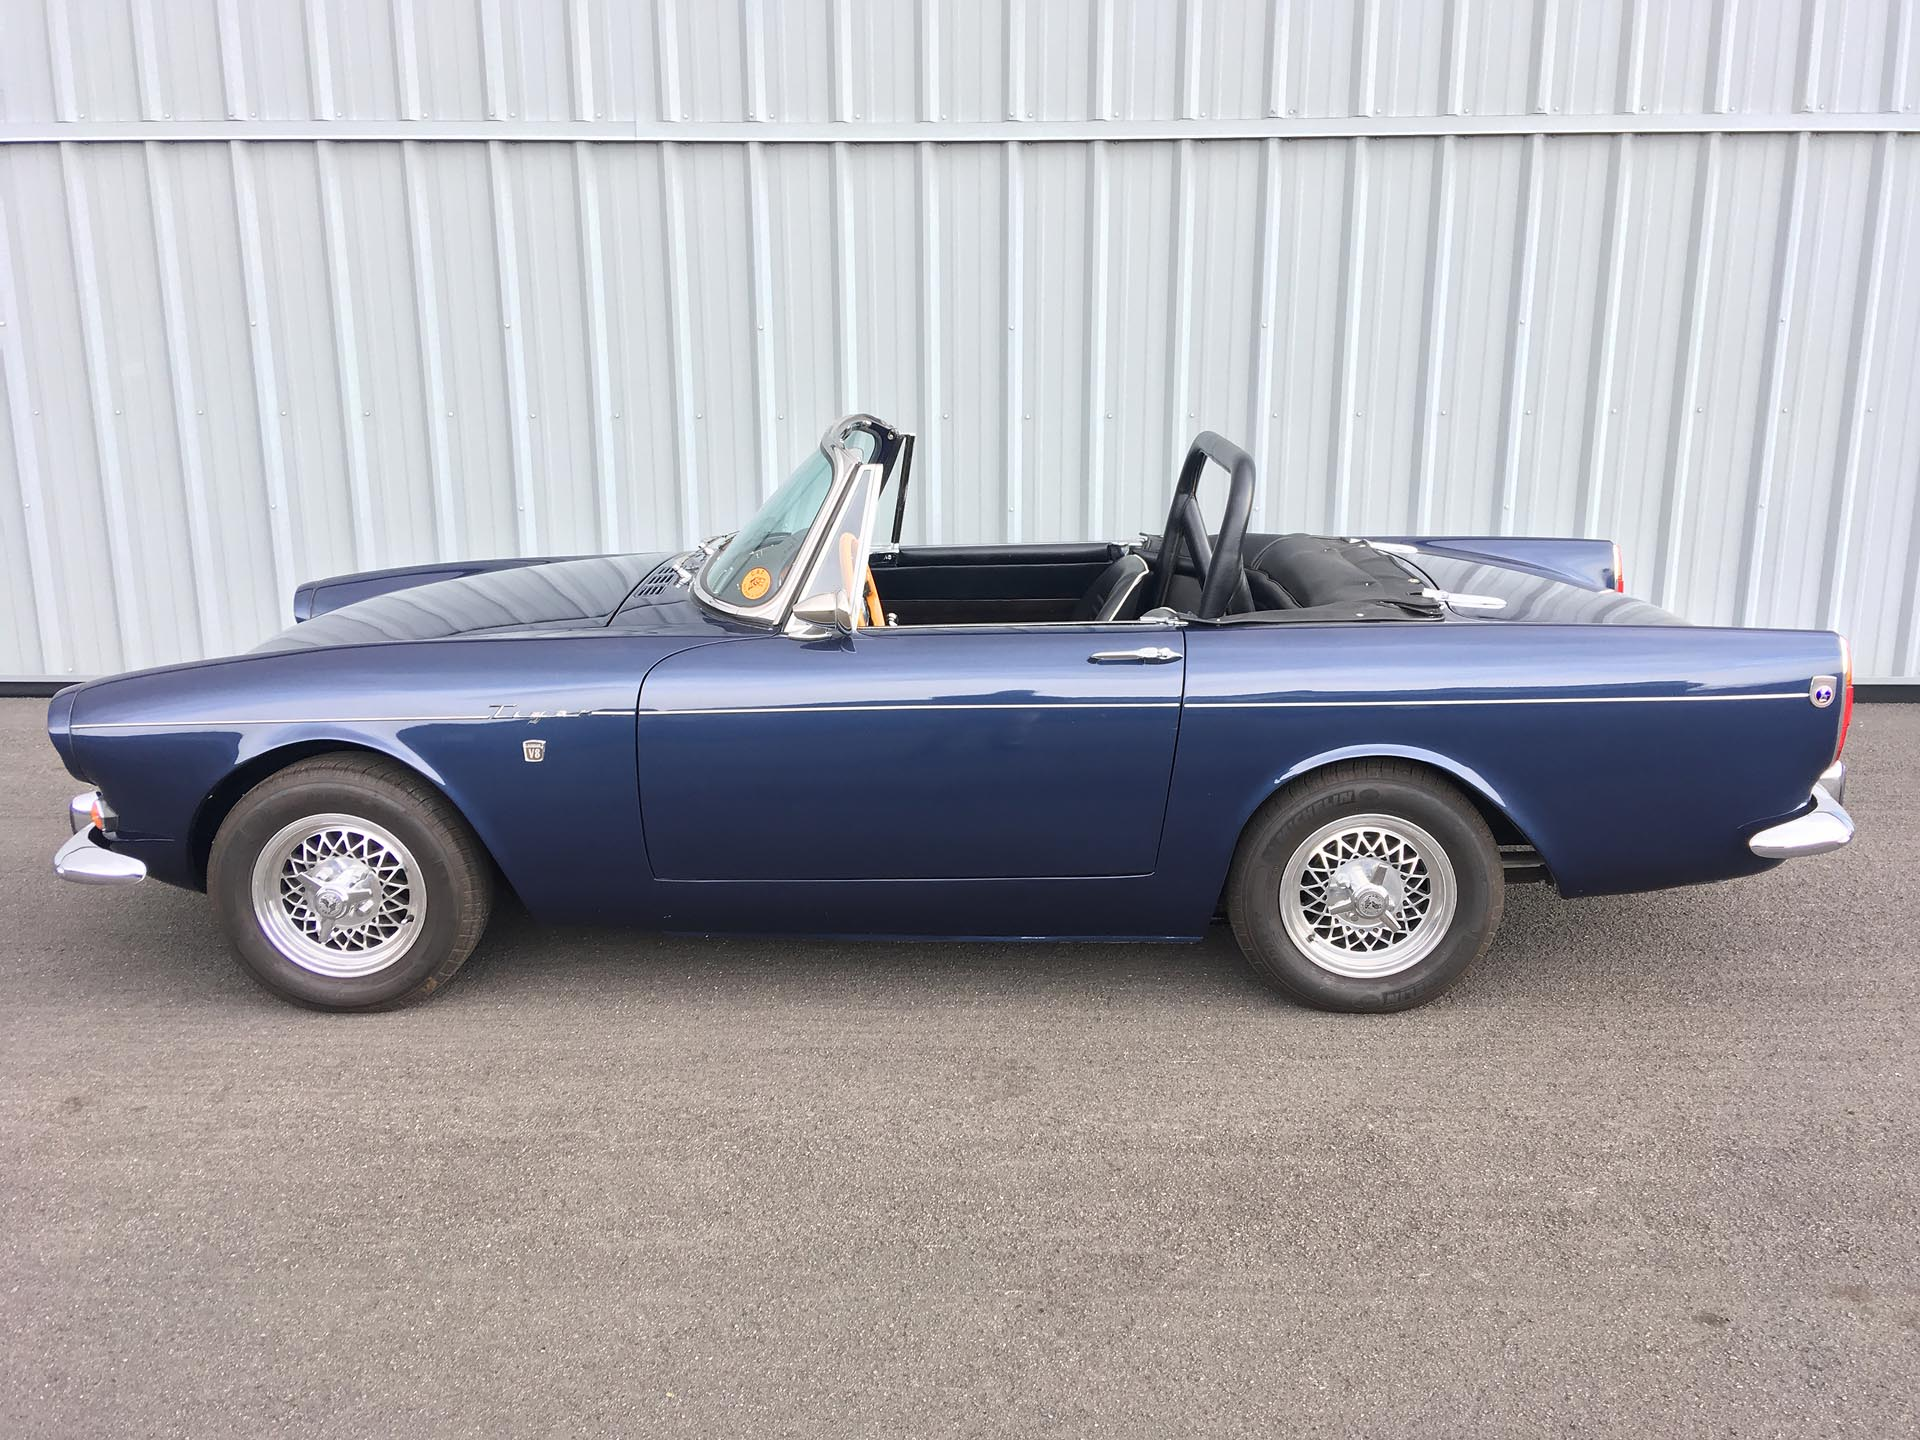 1966 Sunbeam Tiger MKI Roadster